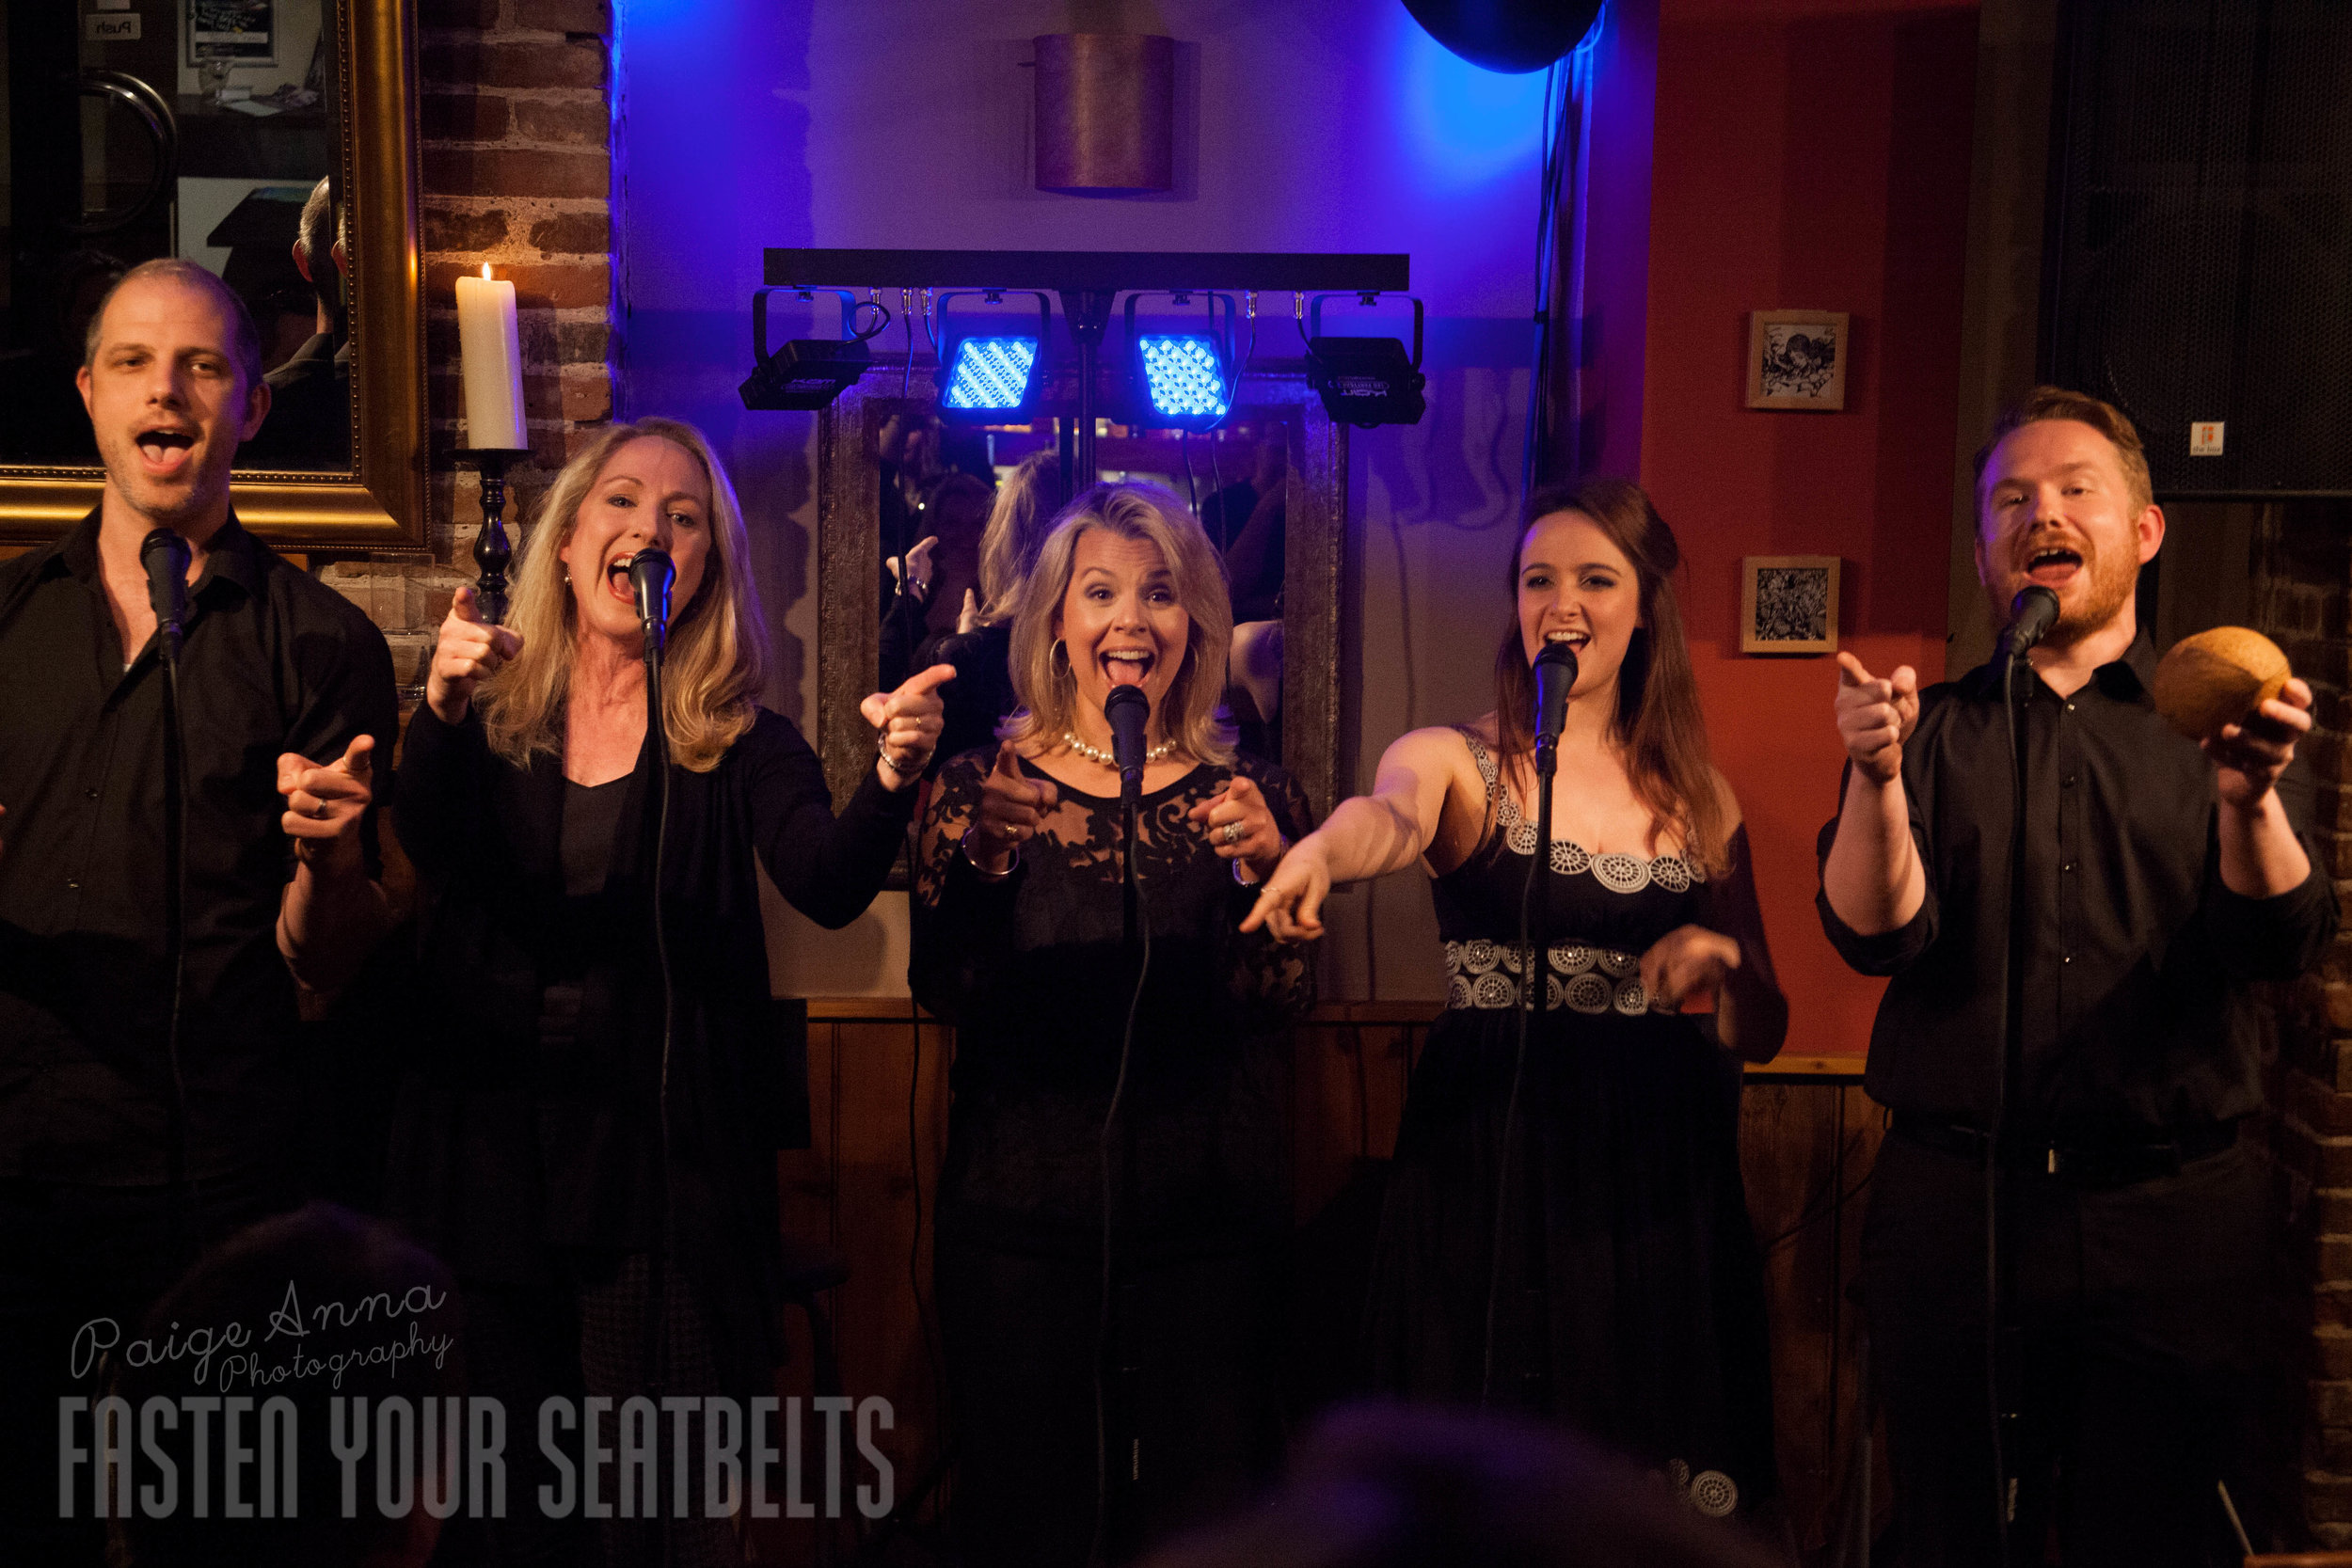 Nate Rogers, Pippa Winslow, Maureen Rejali, Stephanie Napier and Elliott Griffiths singing 'Thataway' in THE SONGS OF KANDER AND EBB